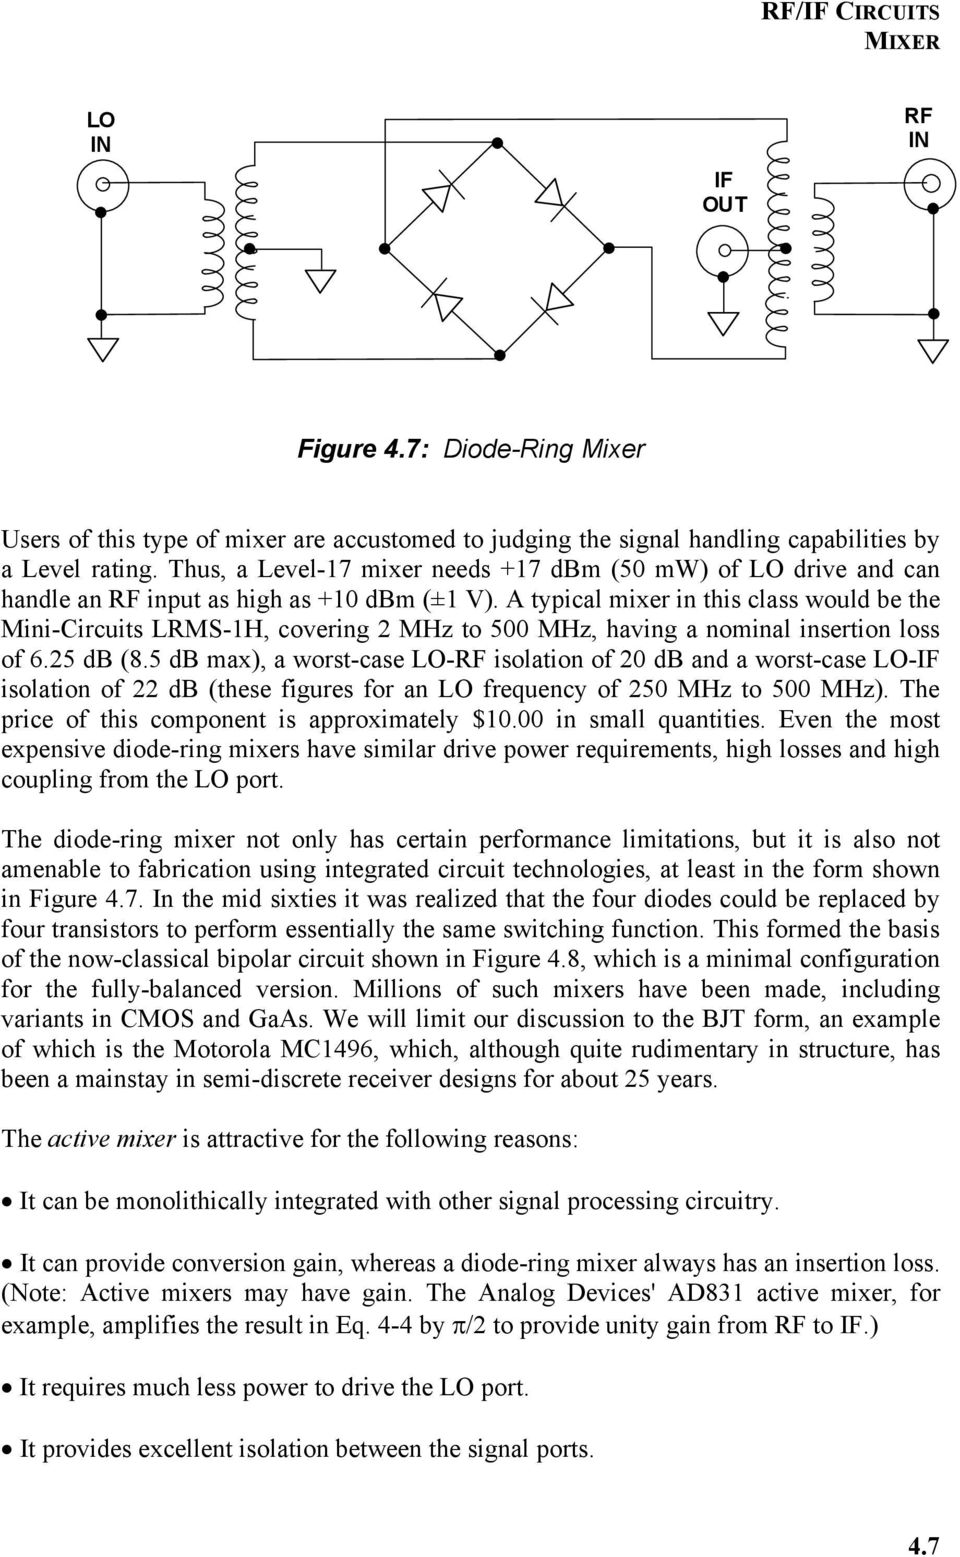 Chapter 4 Rf If Circuits Pdf 500mhz Pic Prescaler A Typical Mixer In This Class Would Be The Mini Lrms 1h